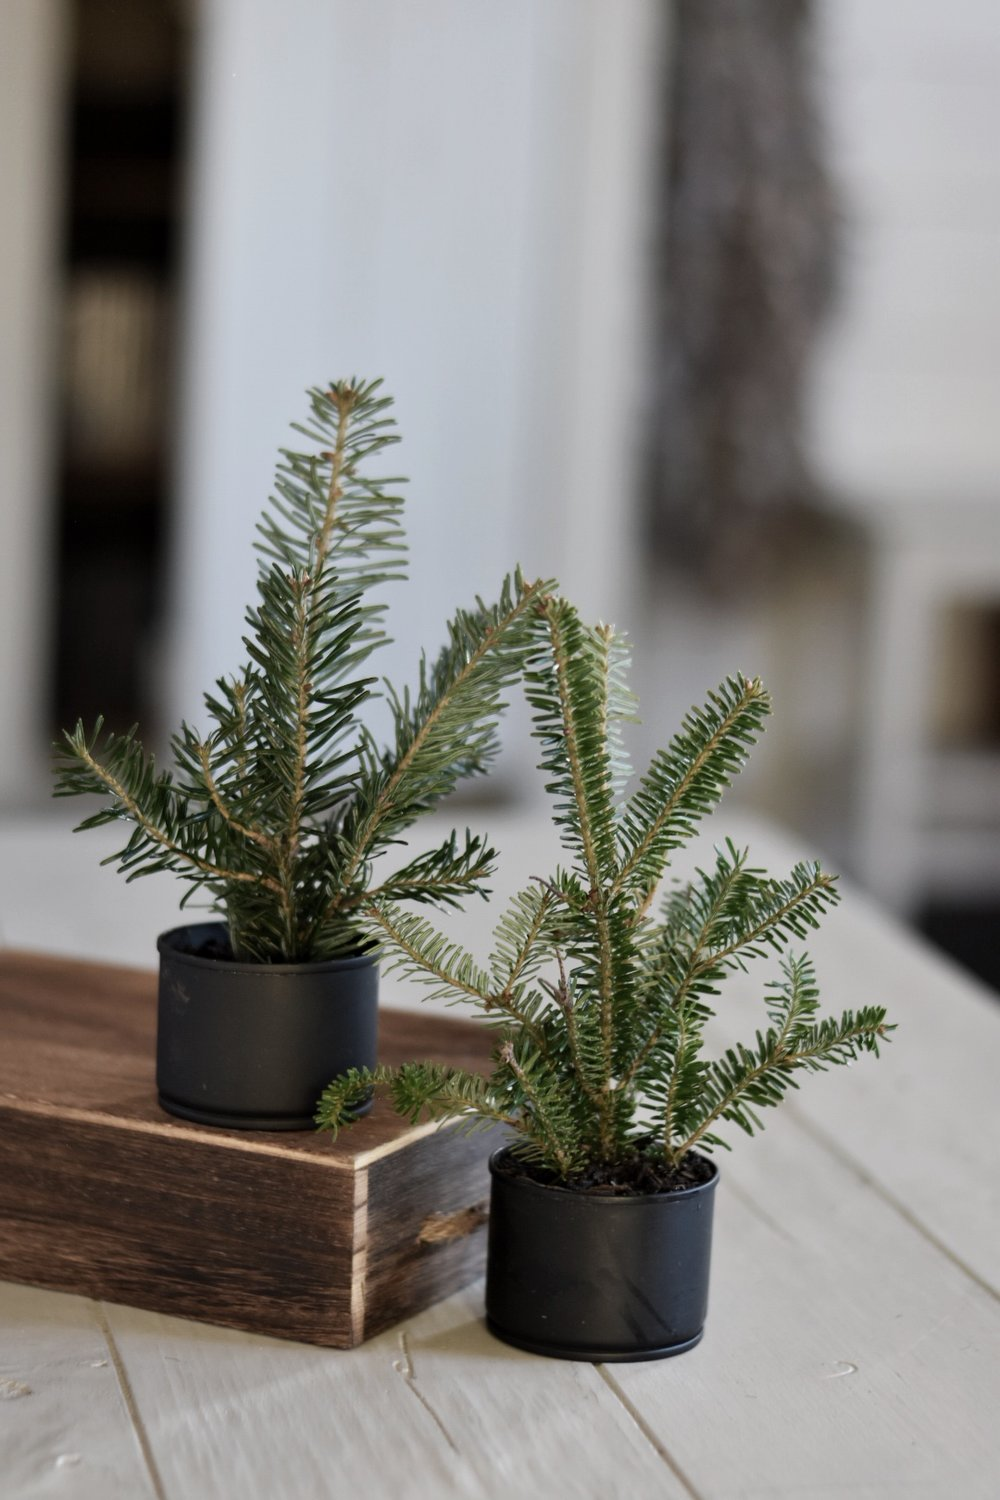 Free Christmas Decorating Ideas Christmas Tree in a Tin Can - Rocky Hedge Farm